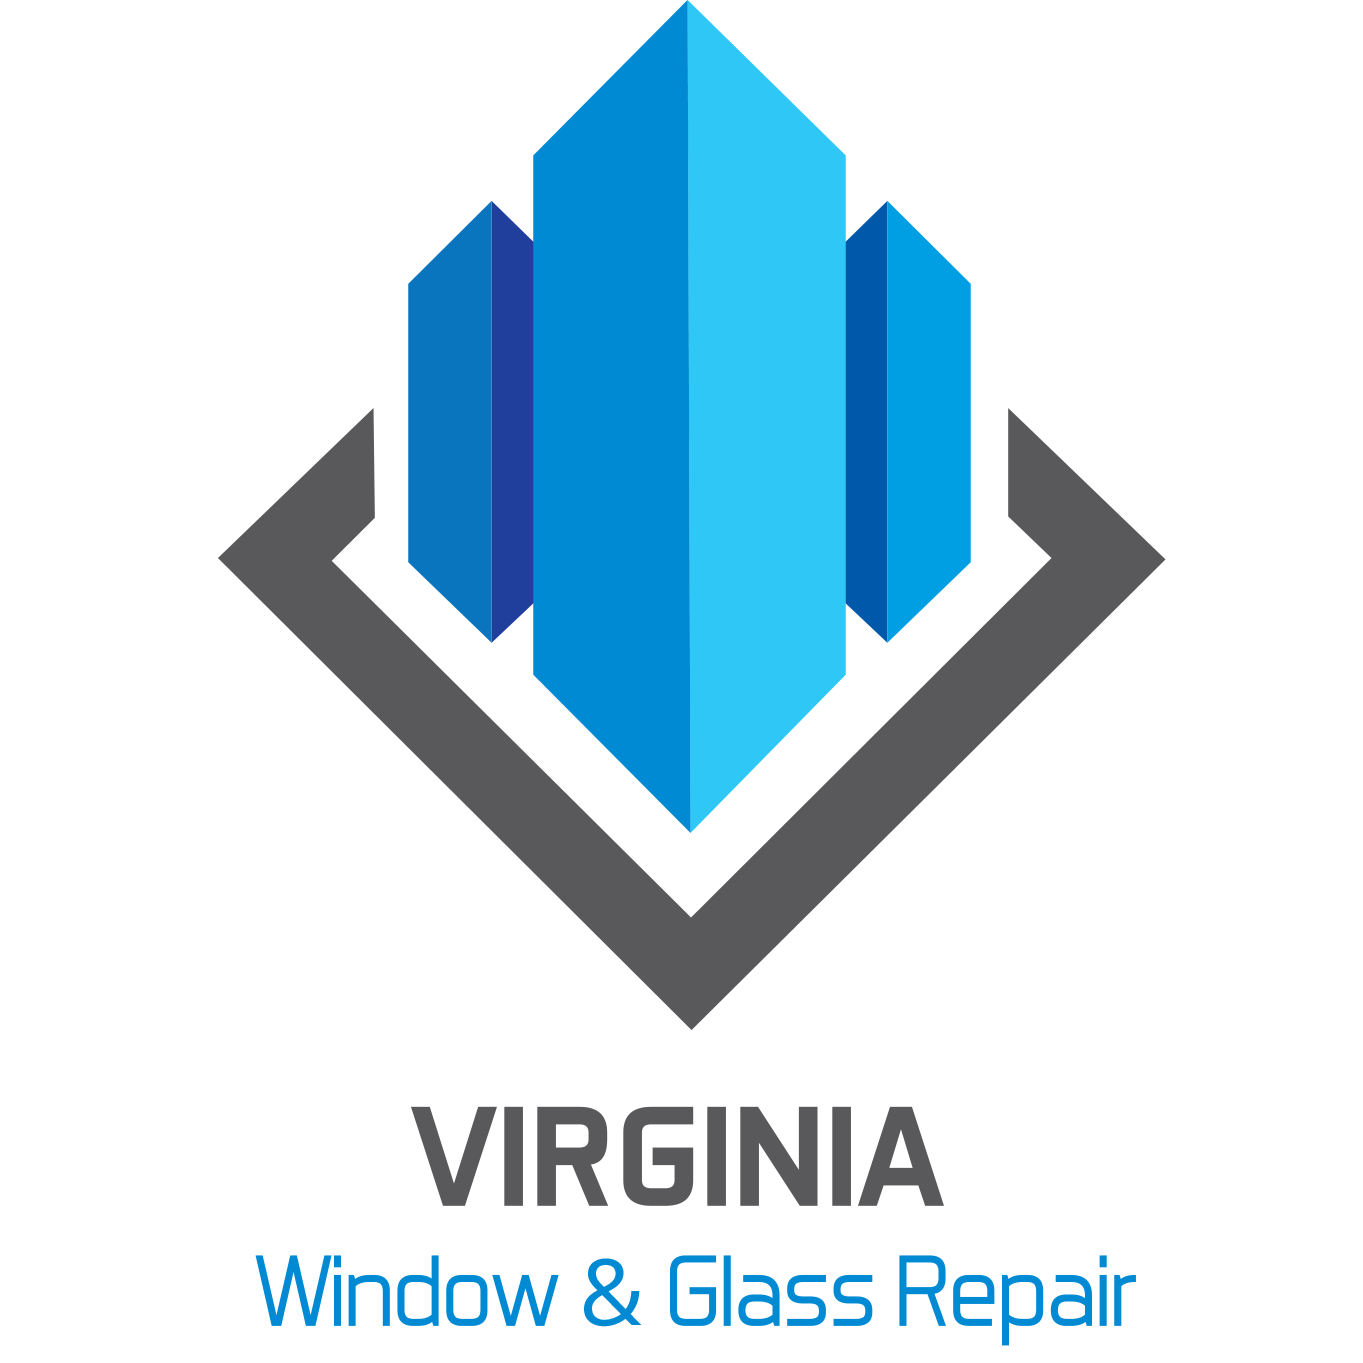 Virginia Window Repair